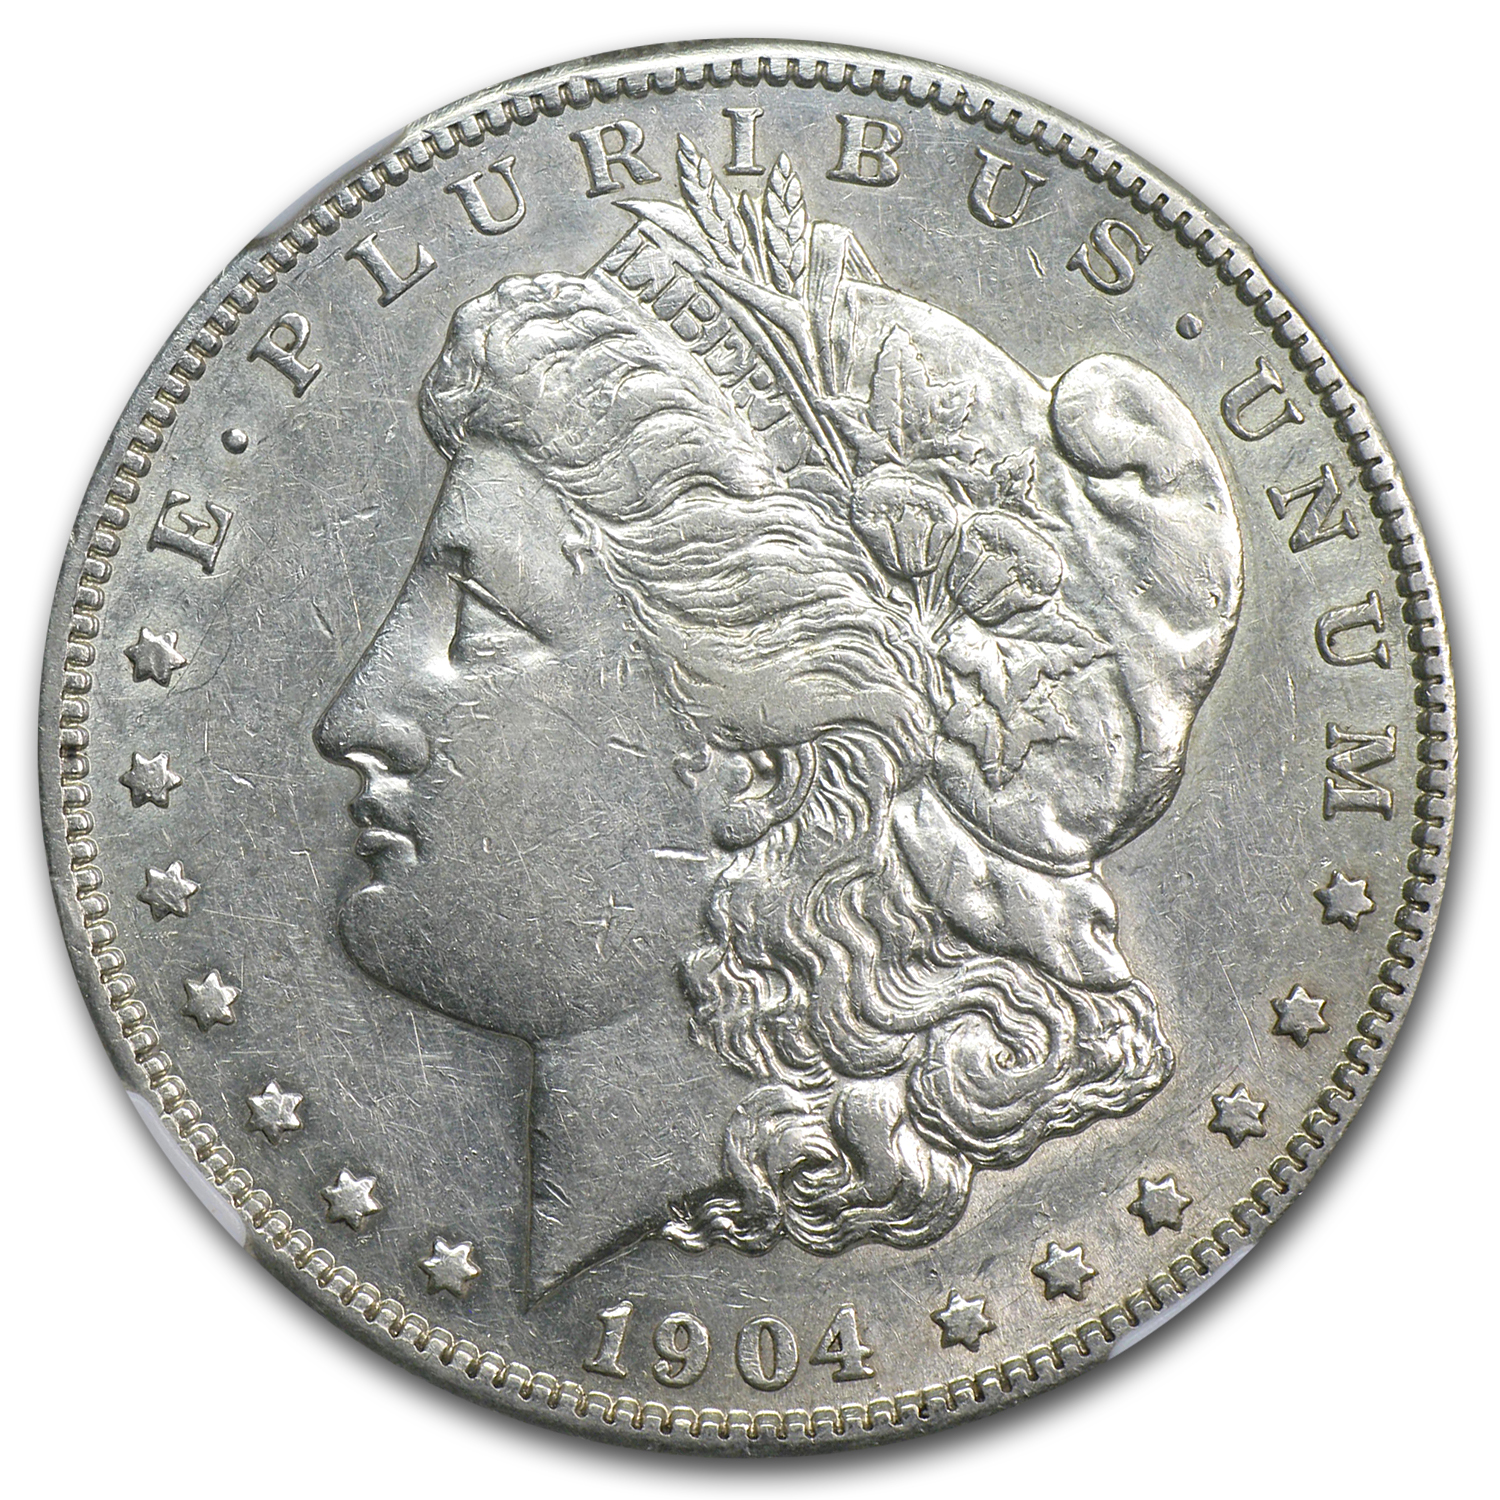 1904-S Morgan Dollar - Almost Uncirculated